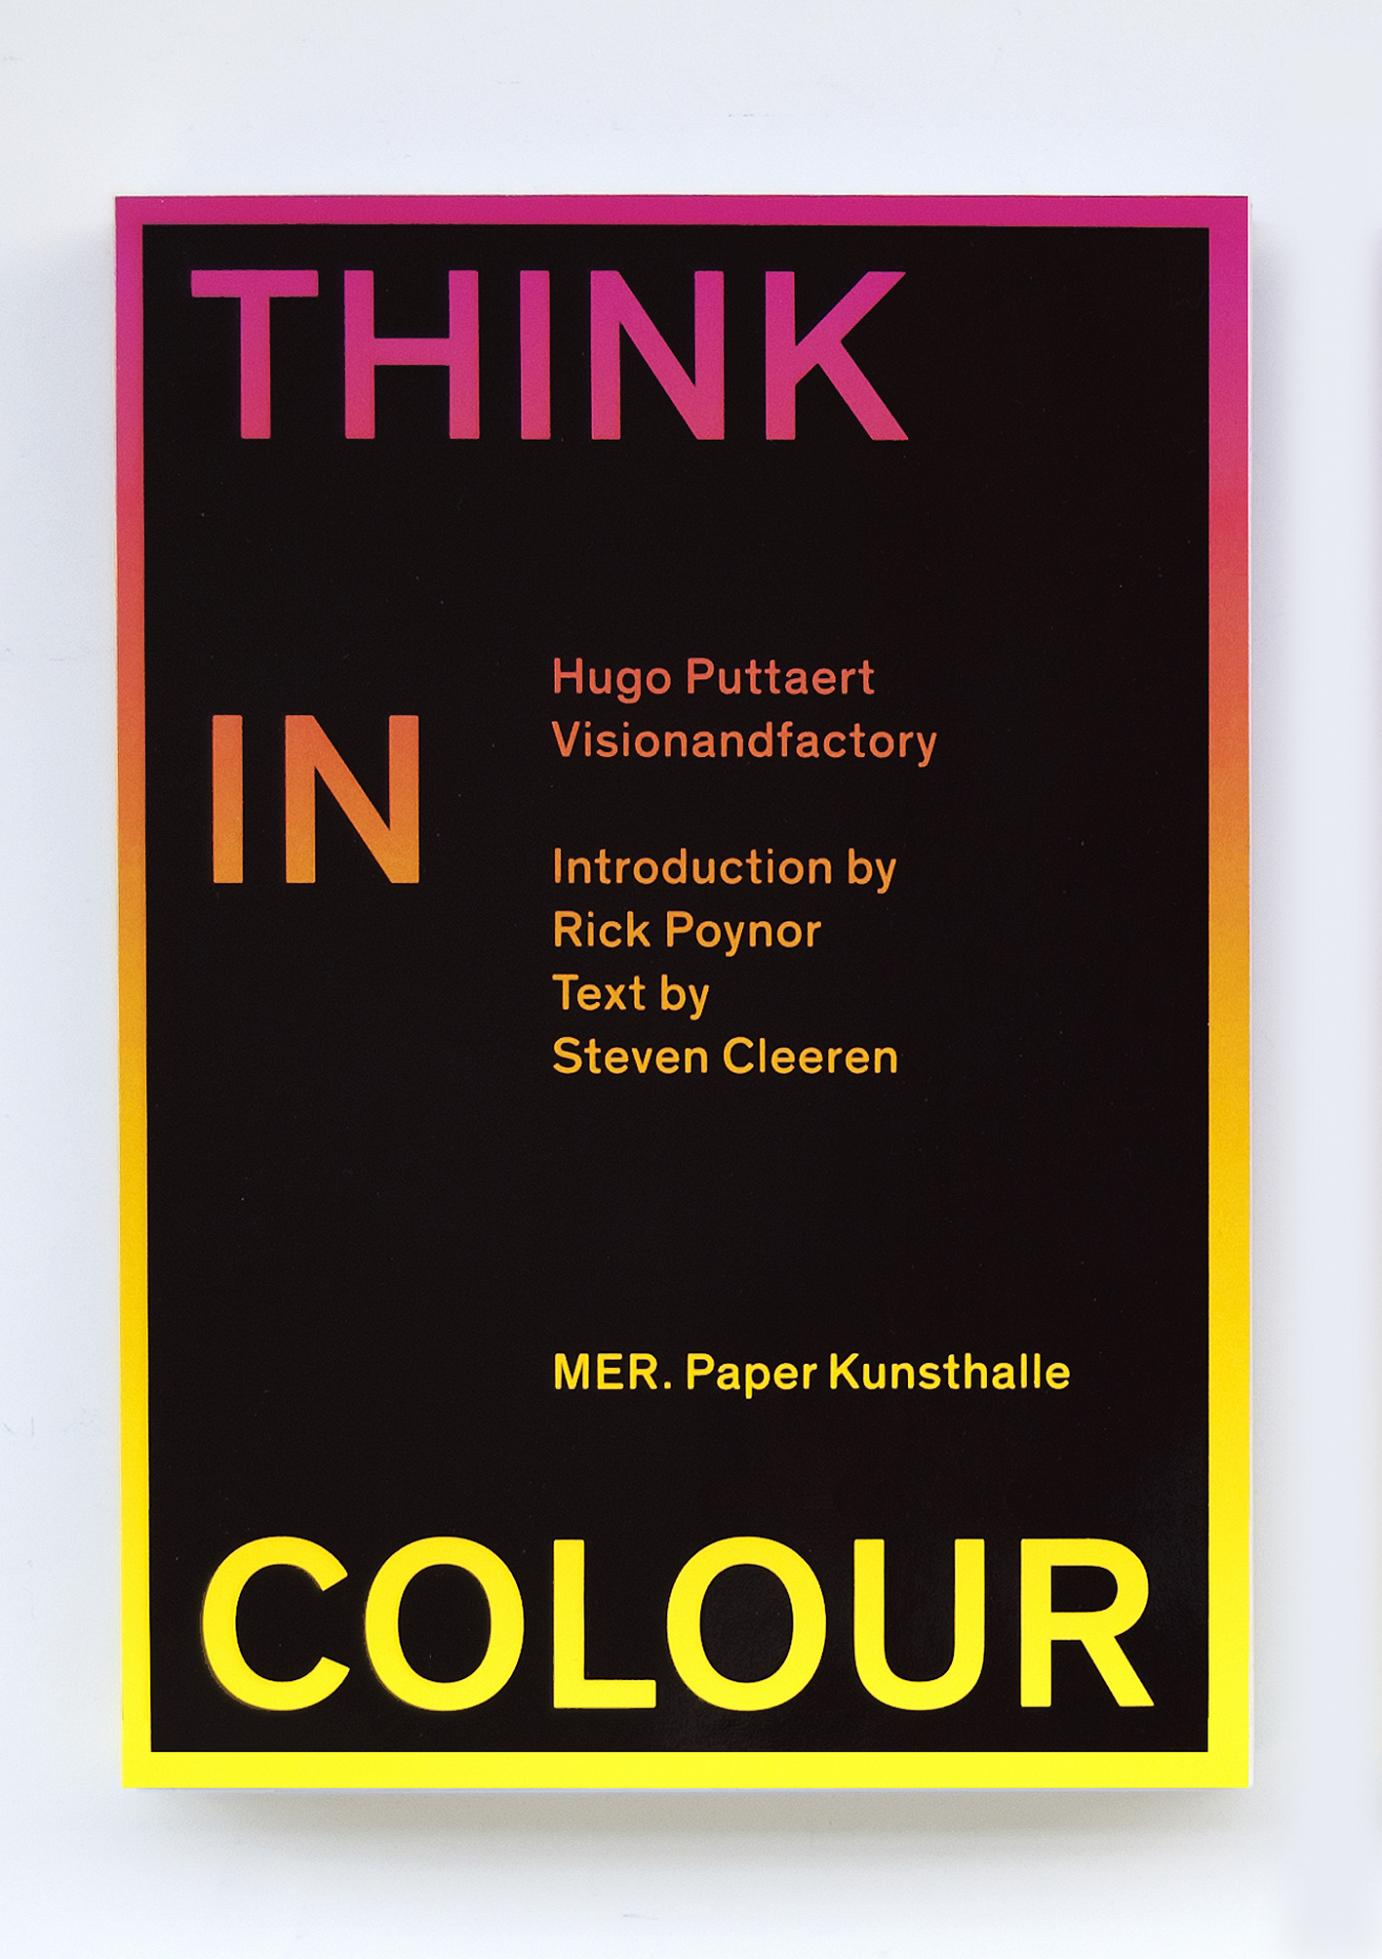 The book is available in three cover versions, yellow-red, green, blue and magenta-purple.